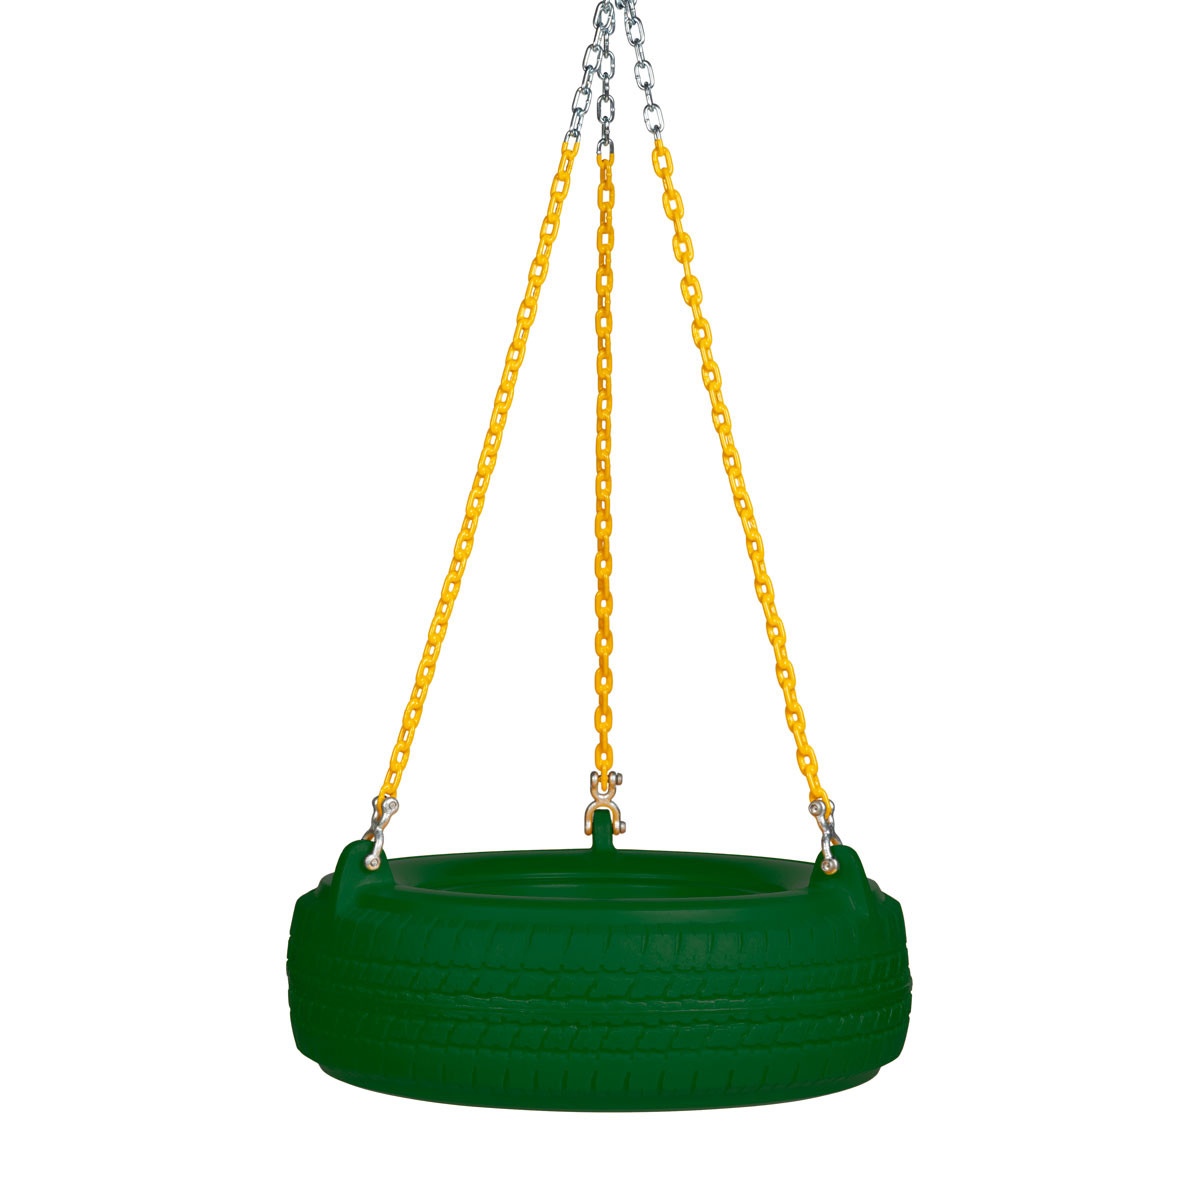 "Plastic Tire Swing with 5'6"" Plastisol Chain - Green/Yellow"